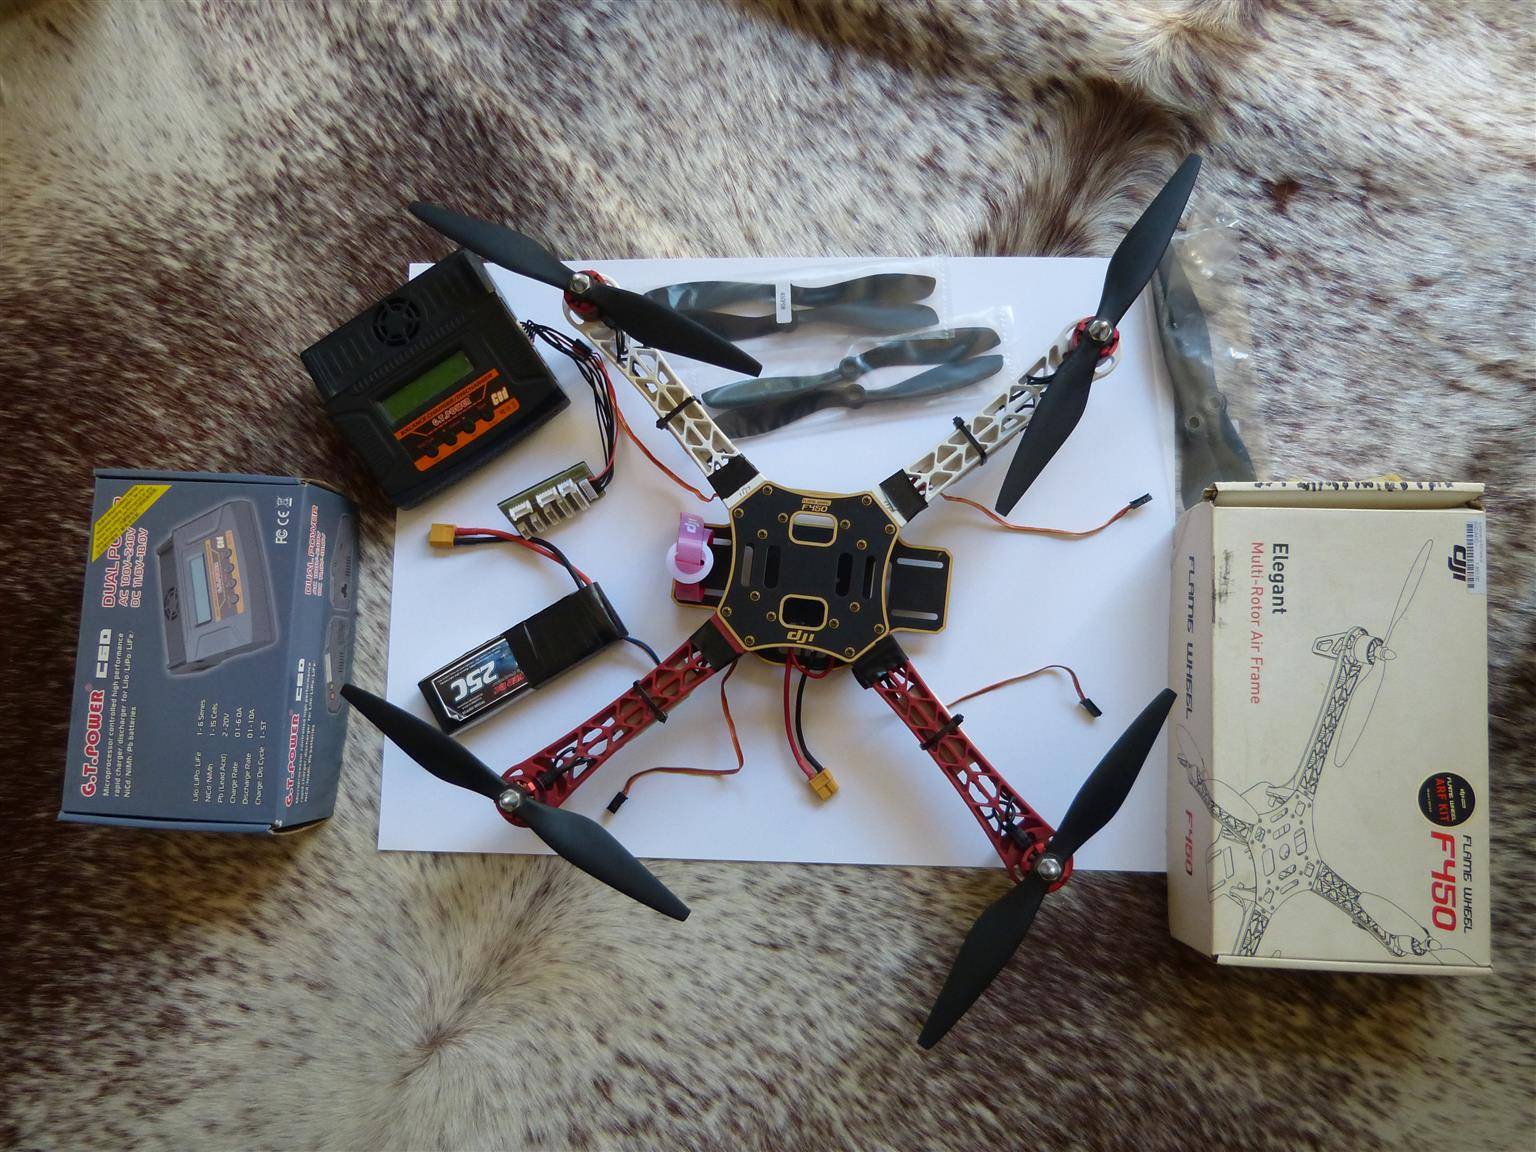 REDUCED] DJI 450 Flame Wheel Quadcopter Kit | Junk Mail